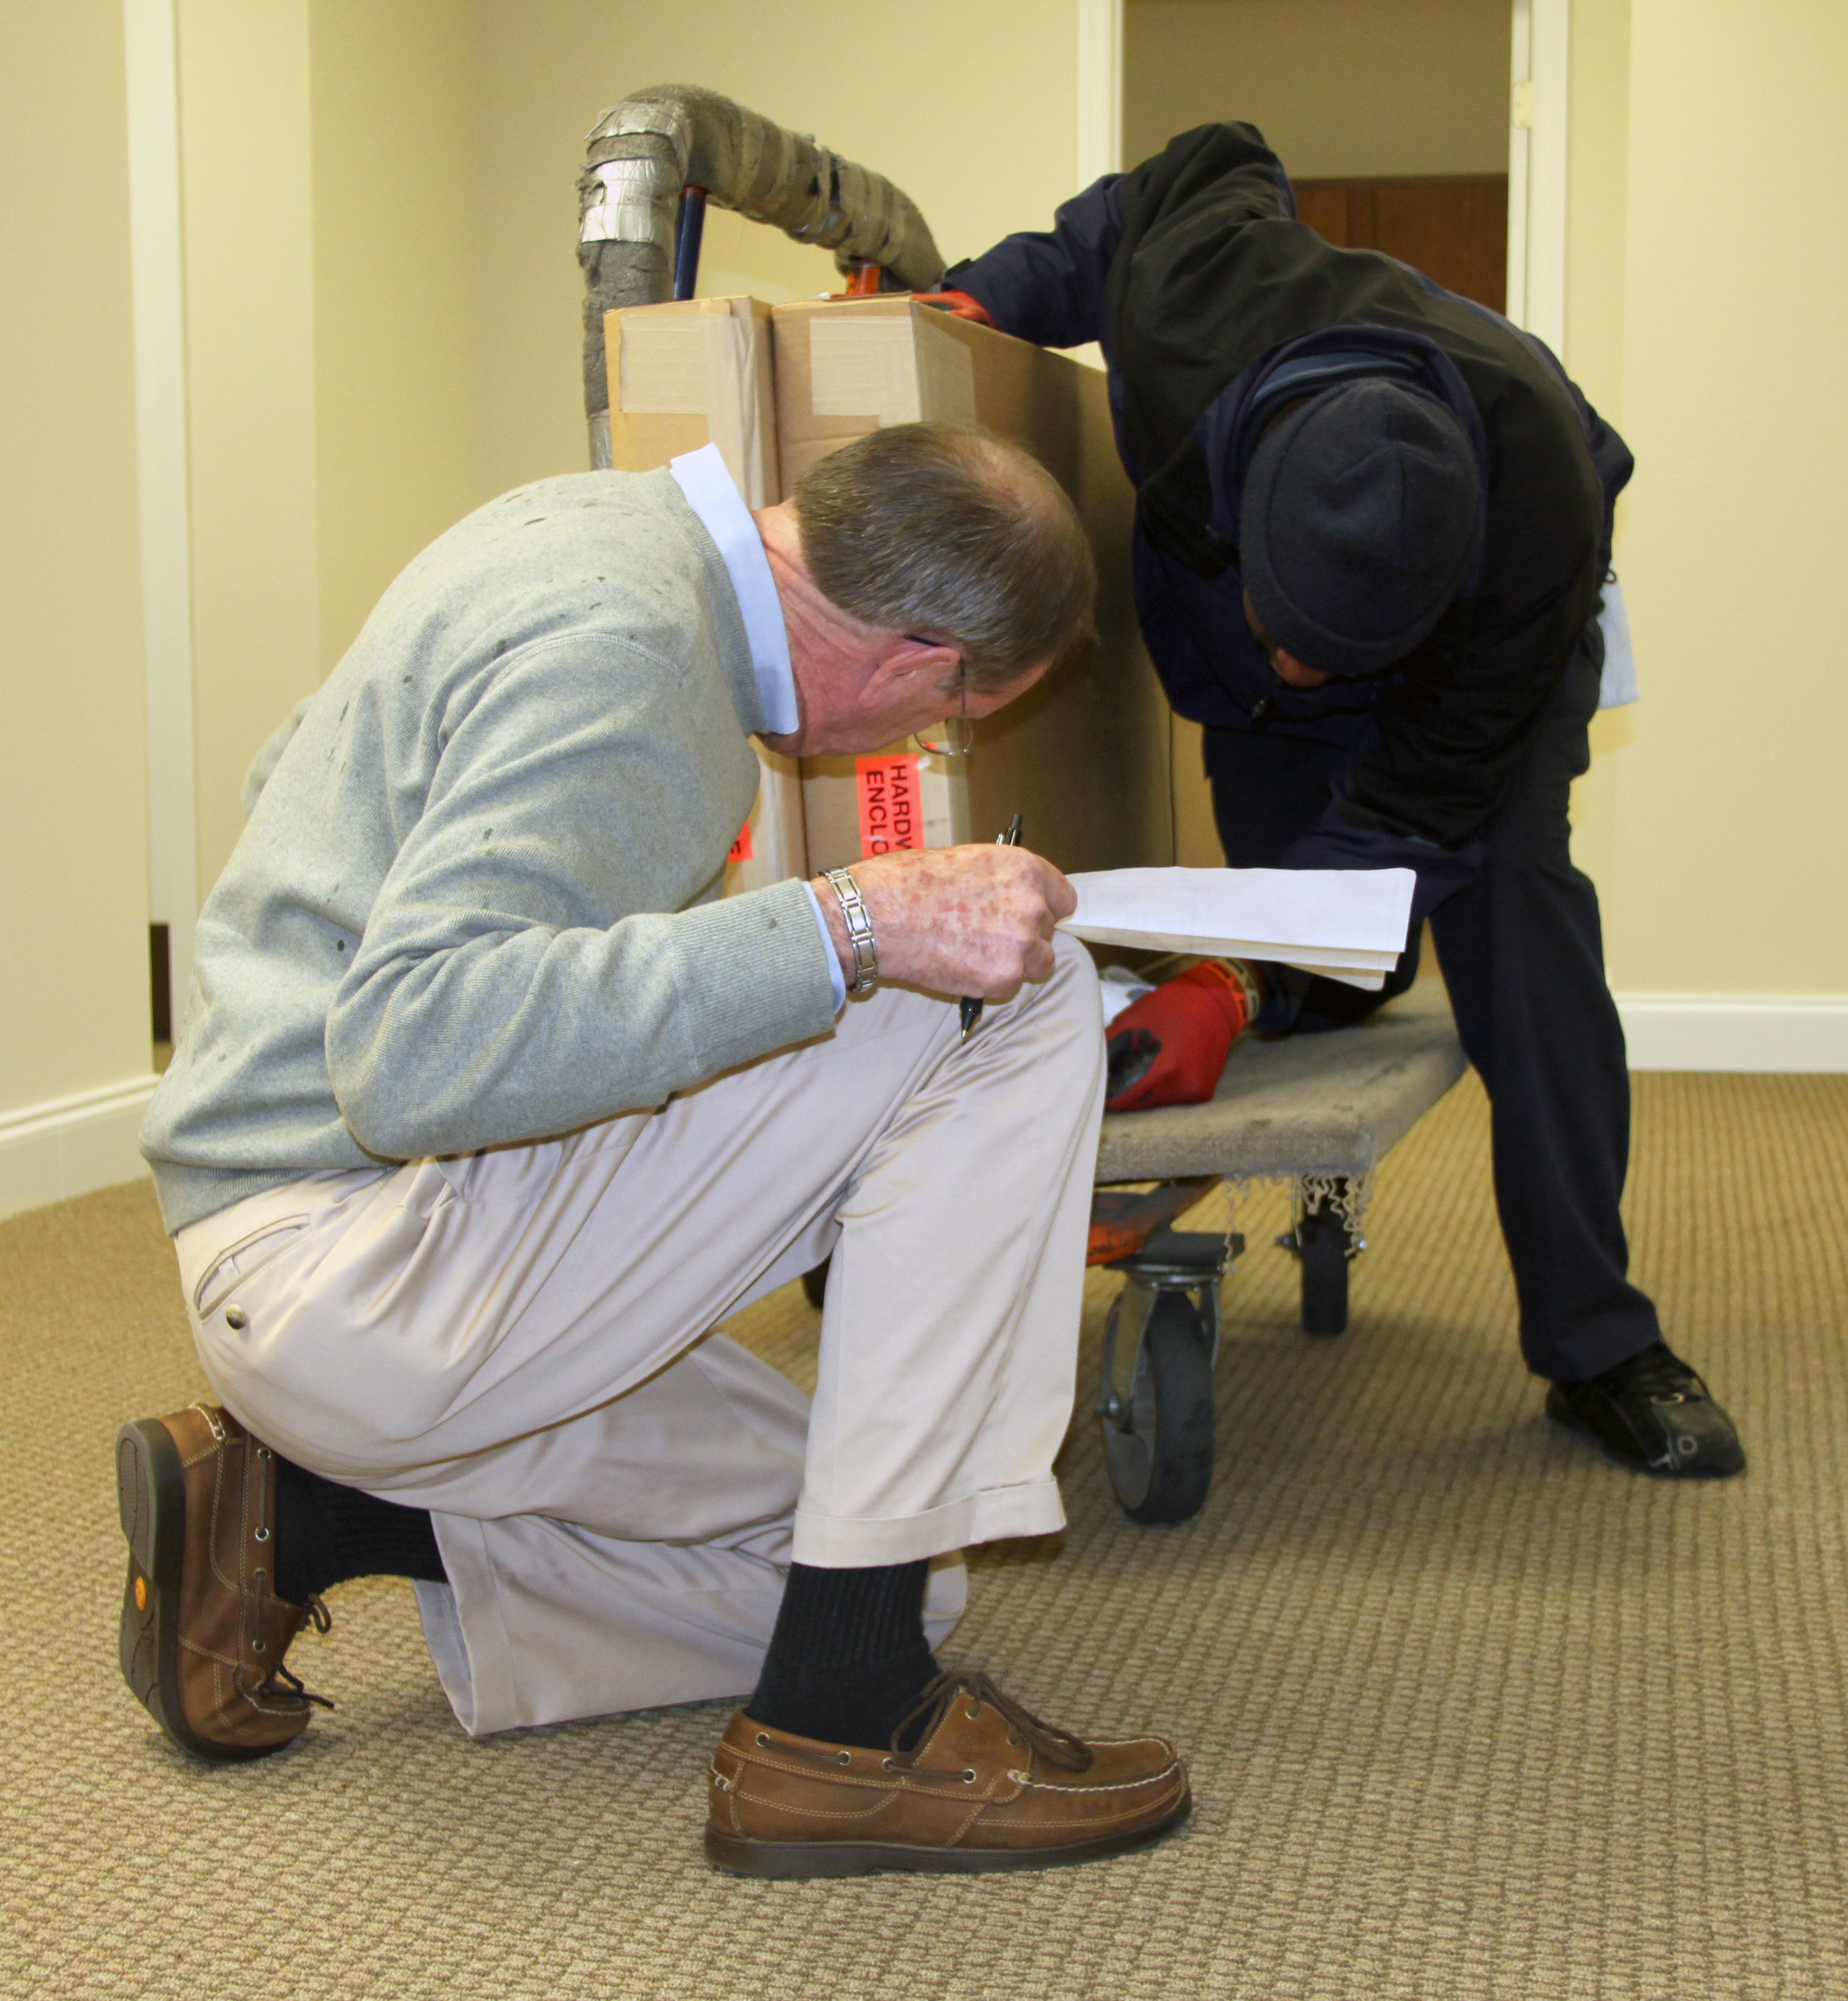 Crawford Slaton, A Representative For Kyser Office Works, Goes Over The  Furniture Shipment